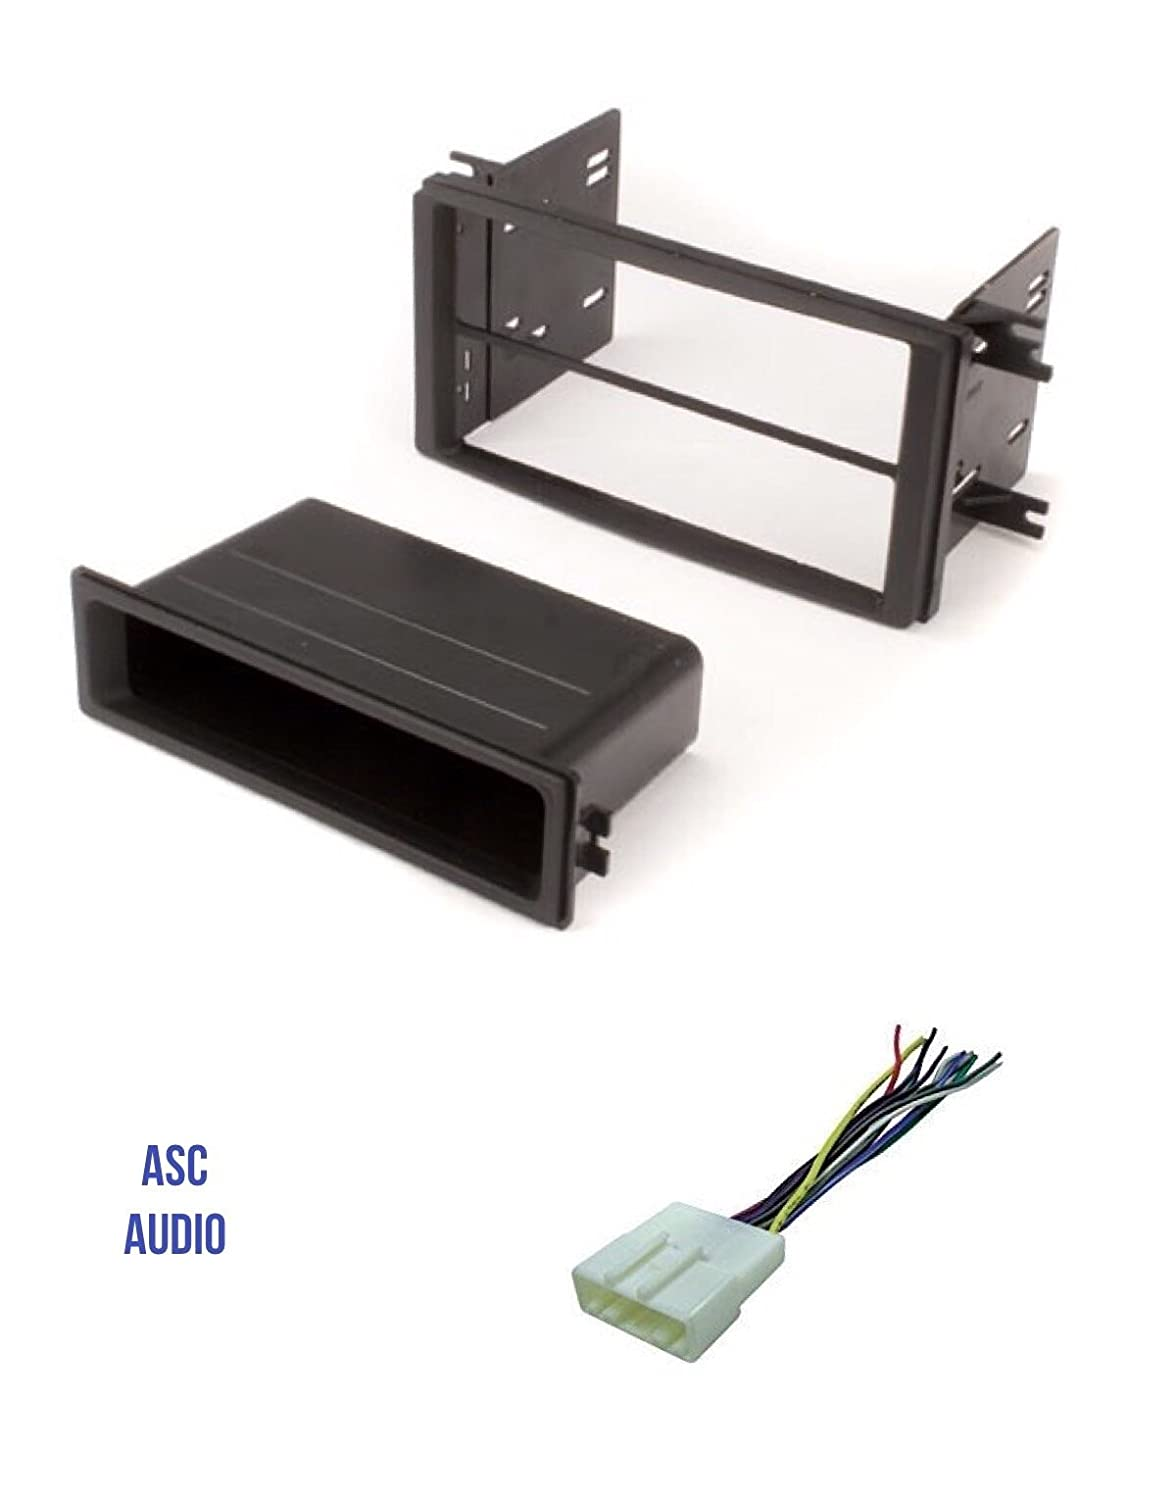 2008-2011 Subaru Impreza ASC Car Stereo Install Dash Kit and Wire Harness for installing an Aftermarket Single or Double Din Radio for 2009-2013 Subaru Forester 2008-2014 Subaru WRX No Factory NAV Other